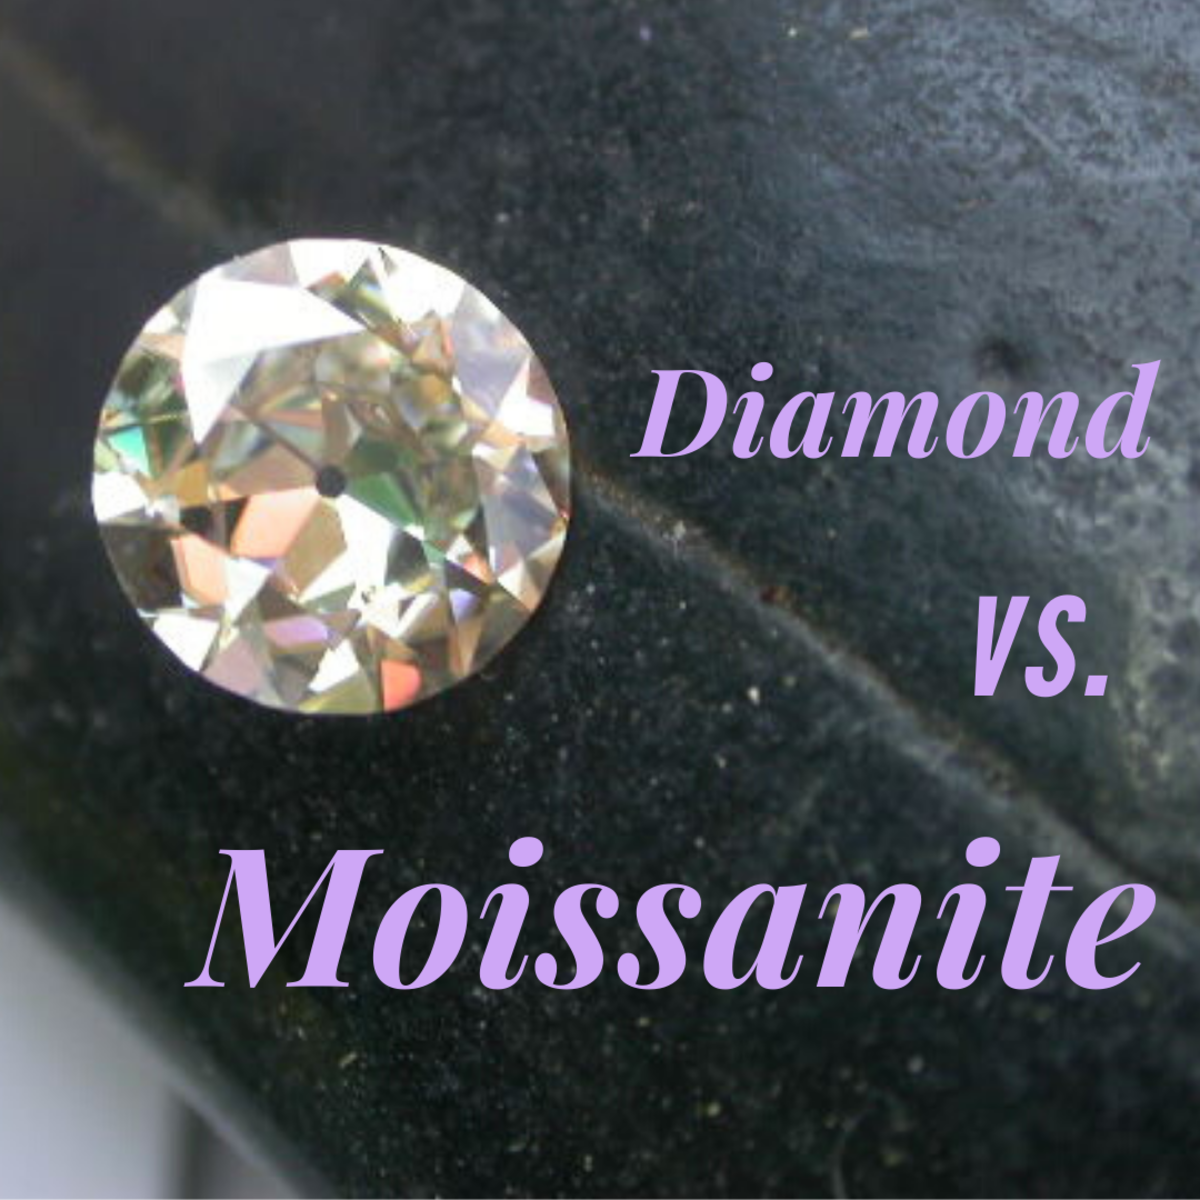 Is moissanite a good alternative to diamond jewelry?